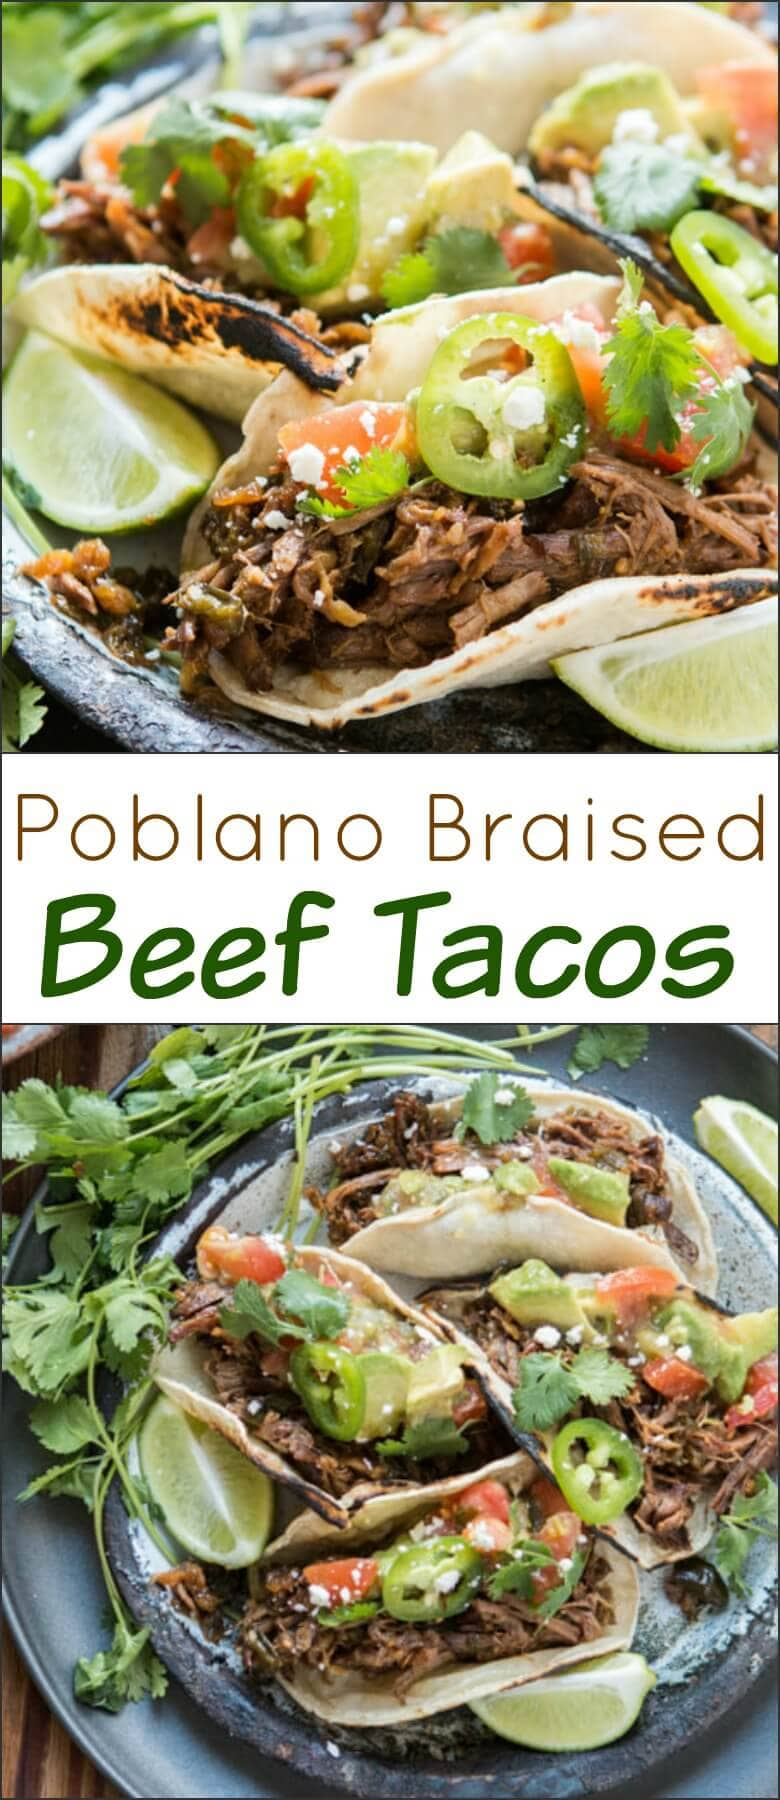 Taco Tuesday is all the rage these days, but you've never had tacos quite like these poblano braised beef tacos. Best meat ever! ohsweetbasil.com